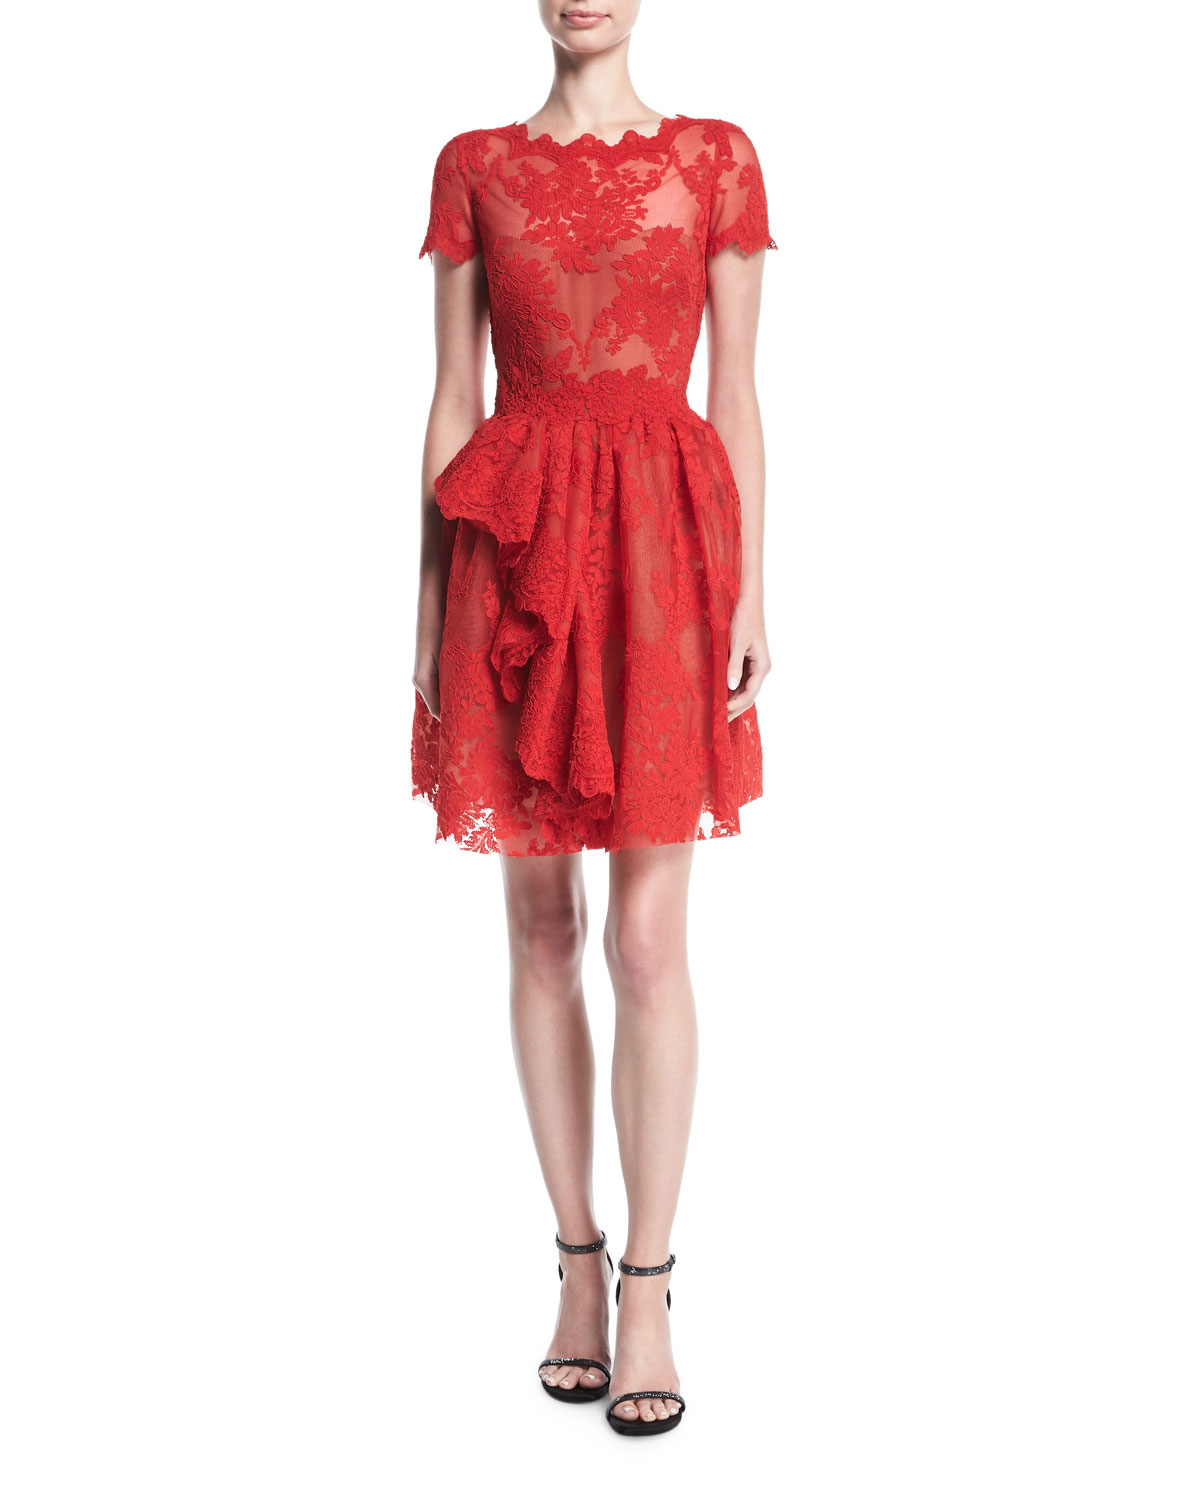 Catchy Quick Marchesa Floral Lace Dress Red Cap Sleeves Dress Neiman Marcus Cap Sleeve Dress Per Cap Sleeve Dress Amazon wedding dress Cap Sleeve Dress